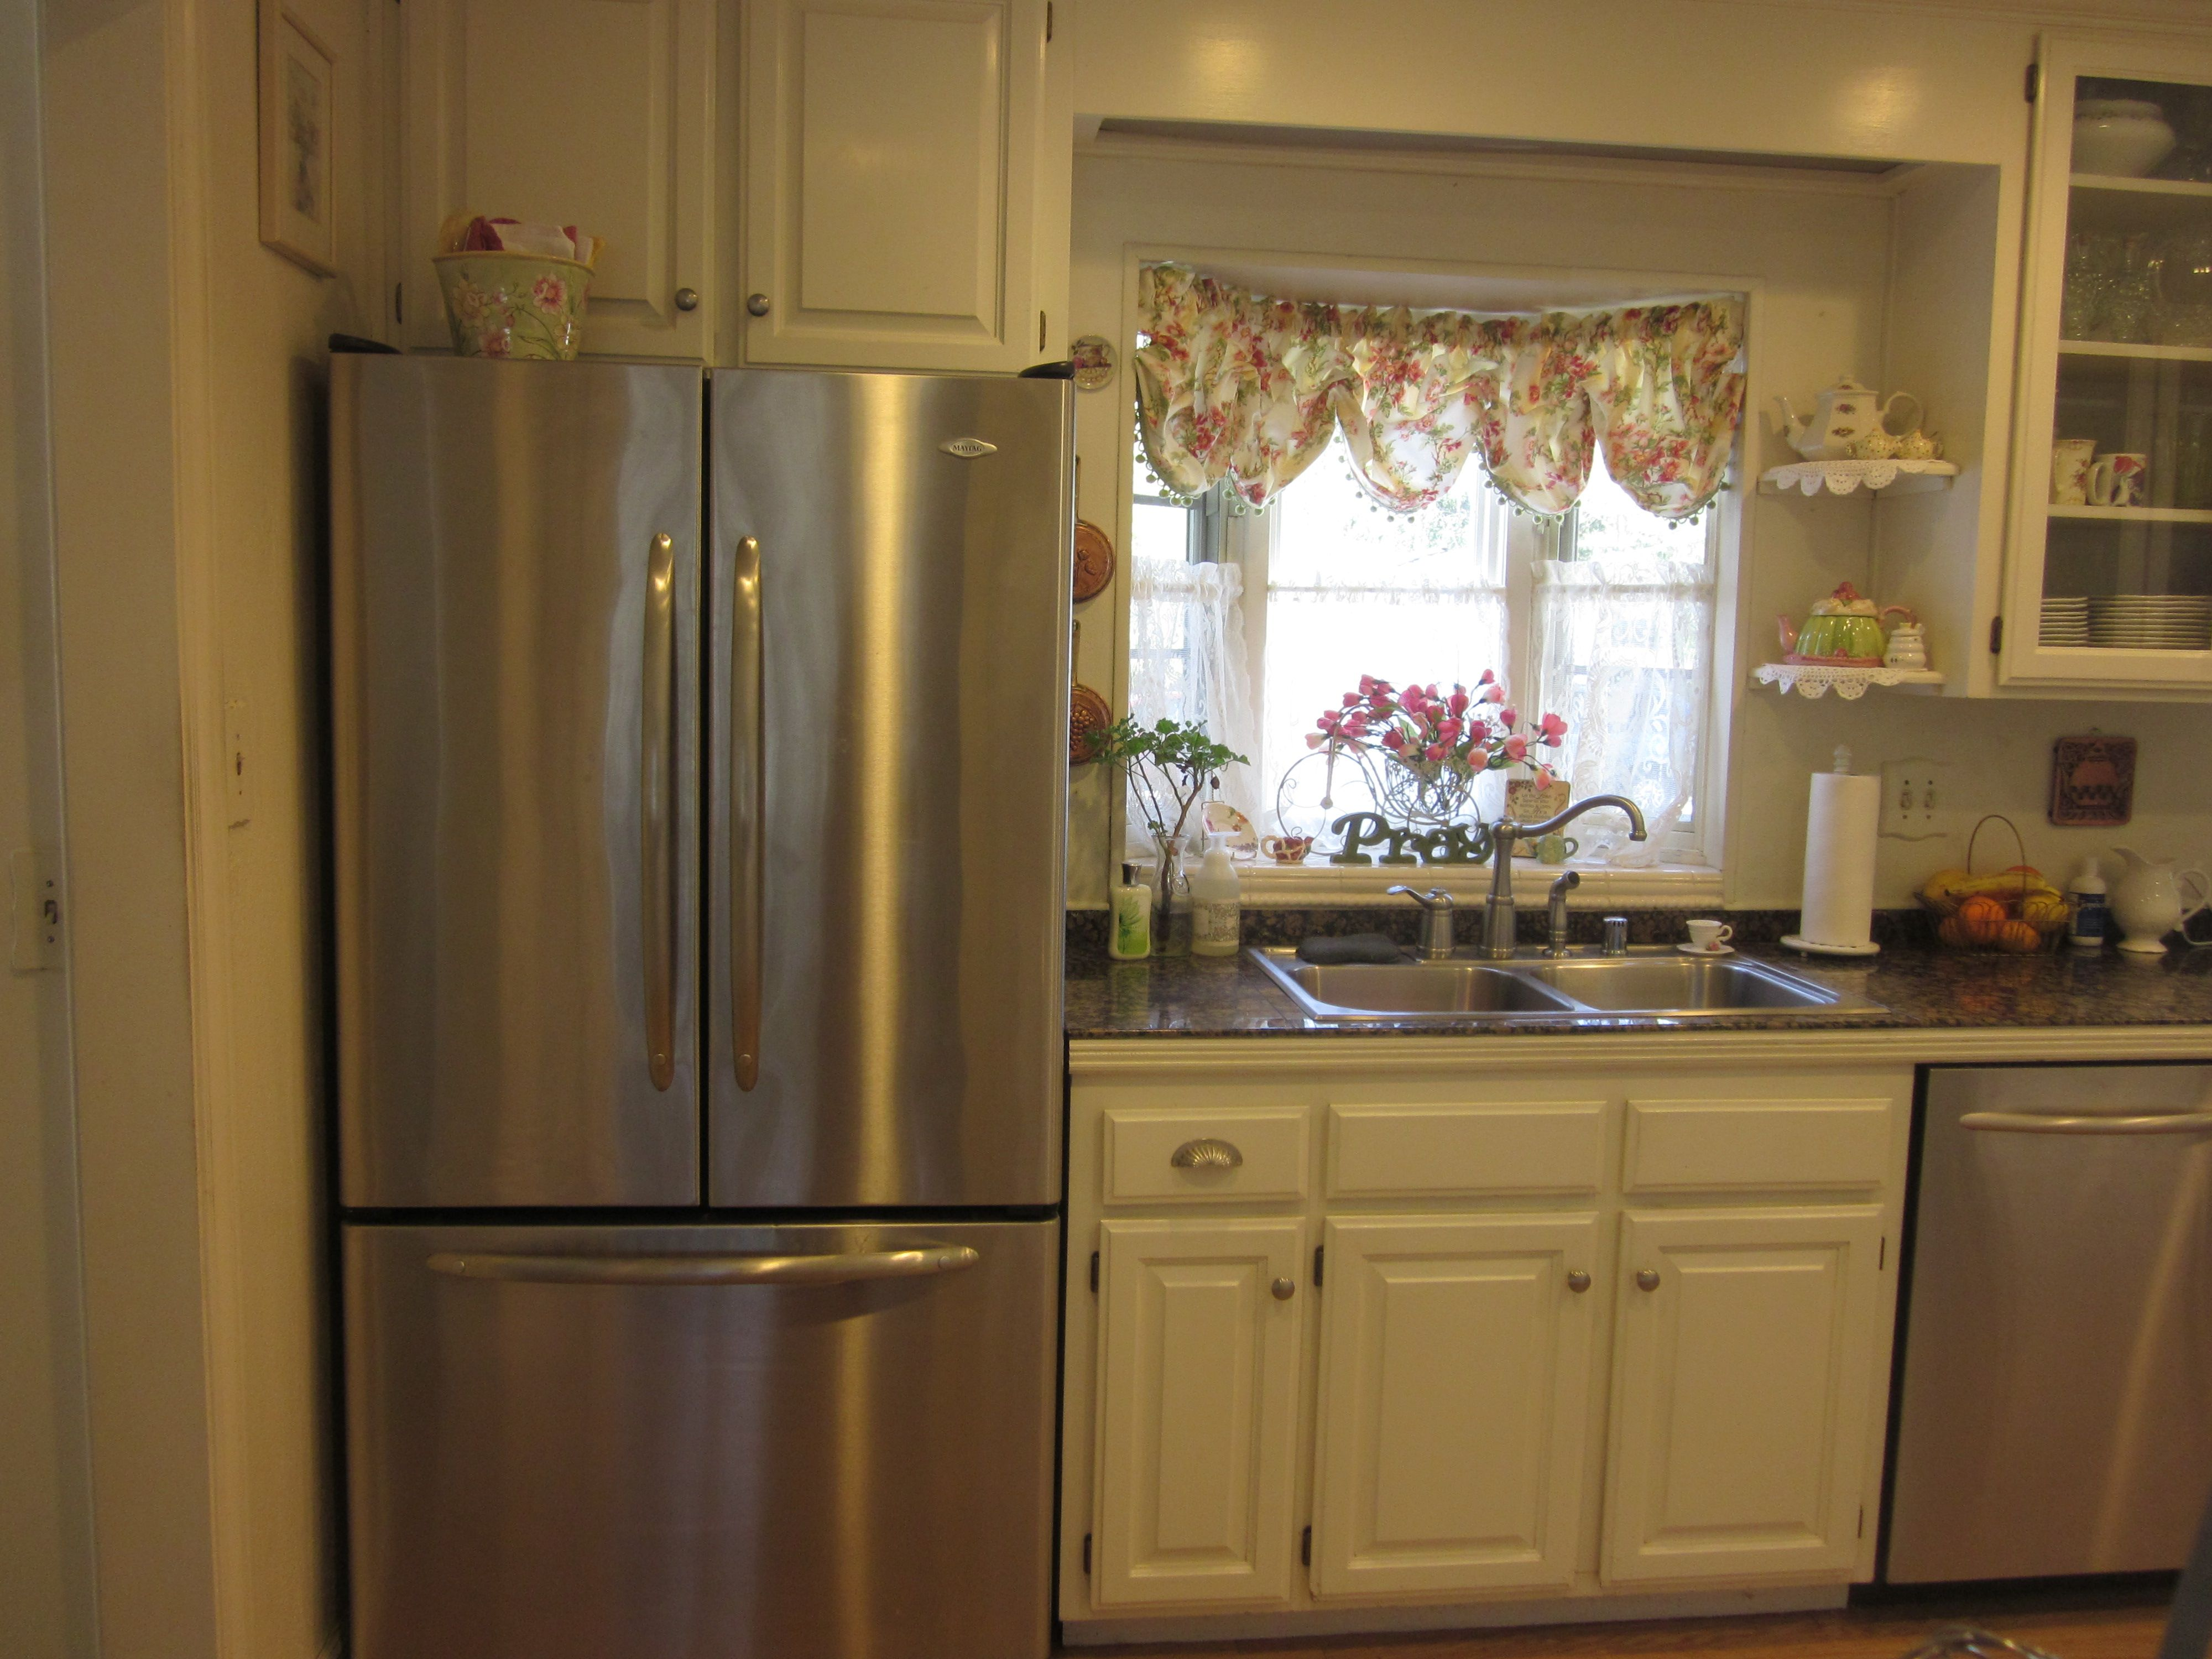 A Maytag French Door Refrigerator In